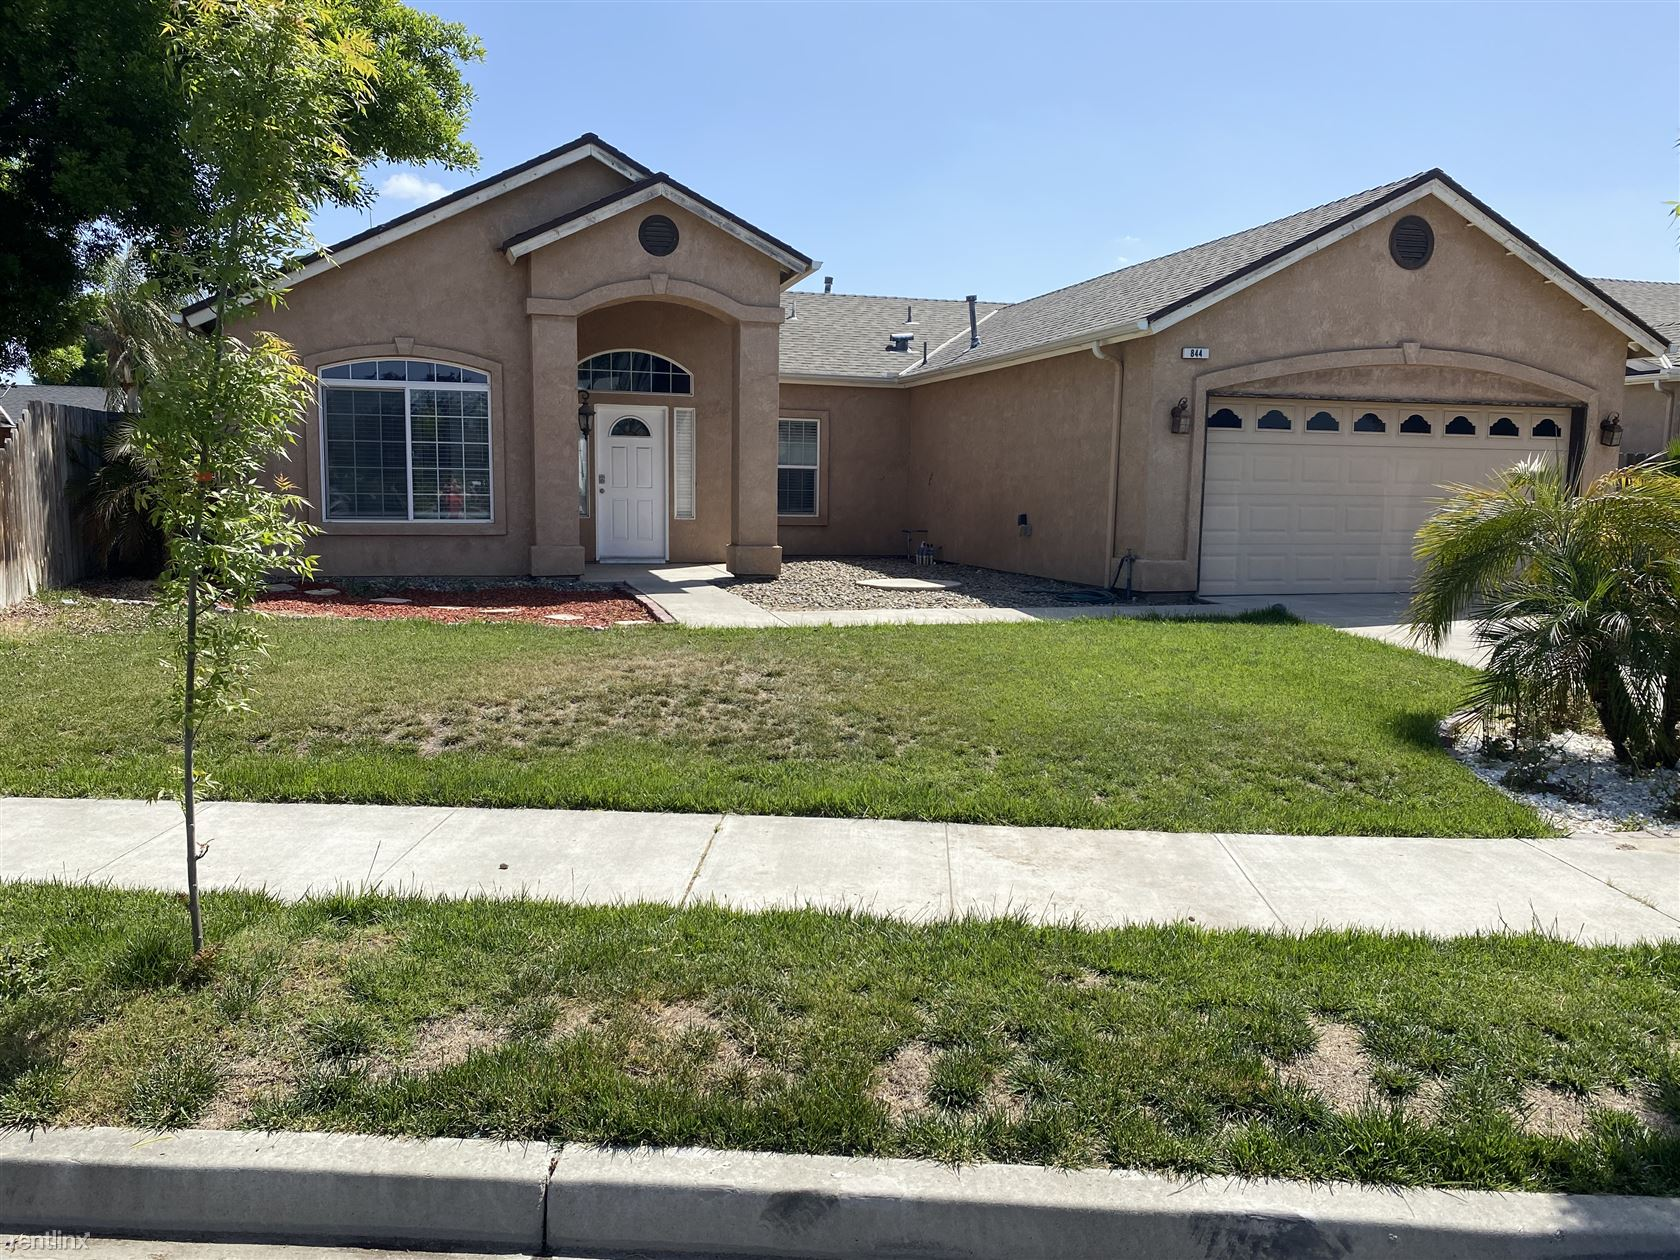 844 Driftwood Ave, Lemoore, CA - $1,850 USD/ month